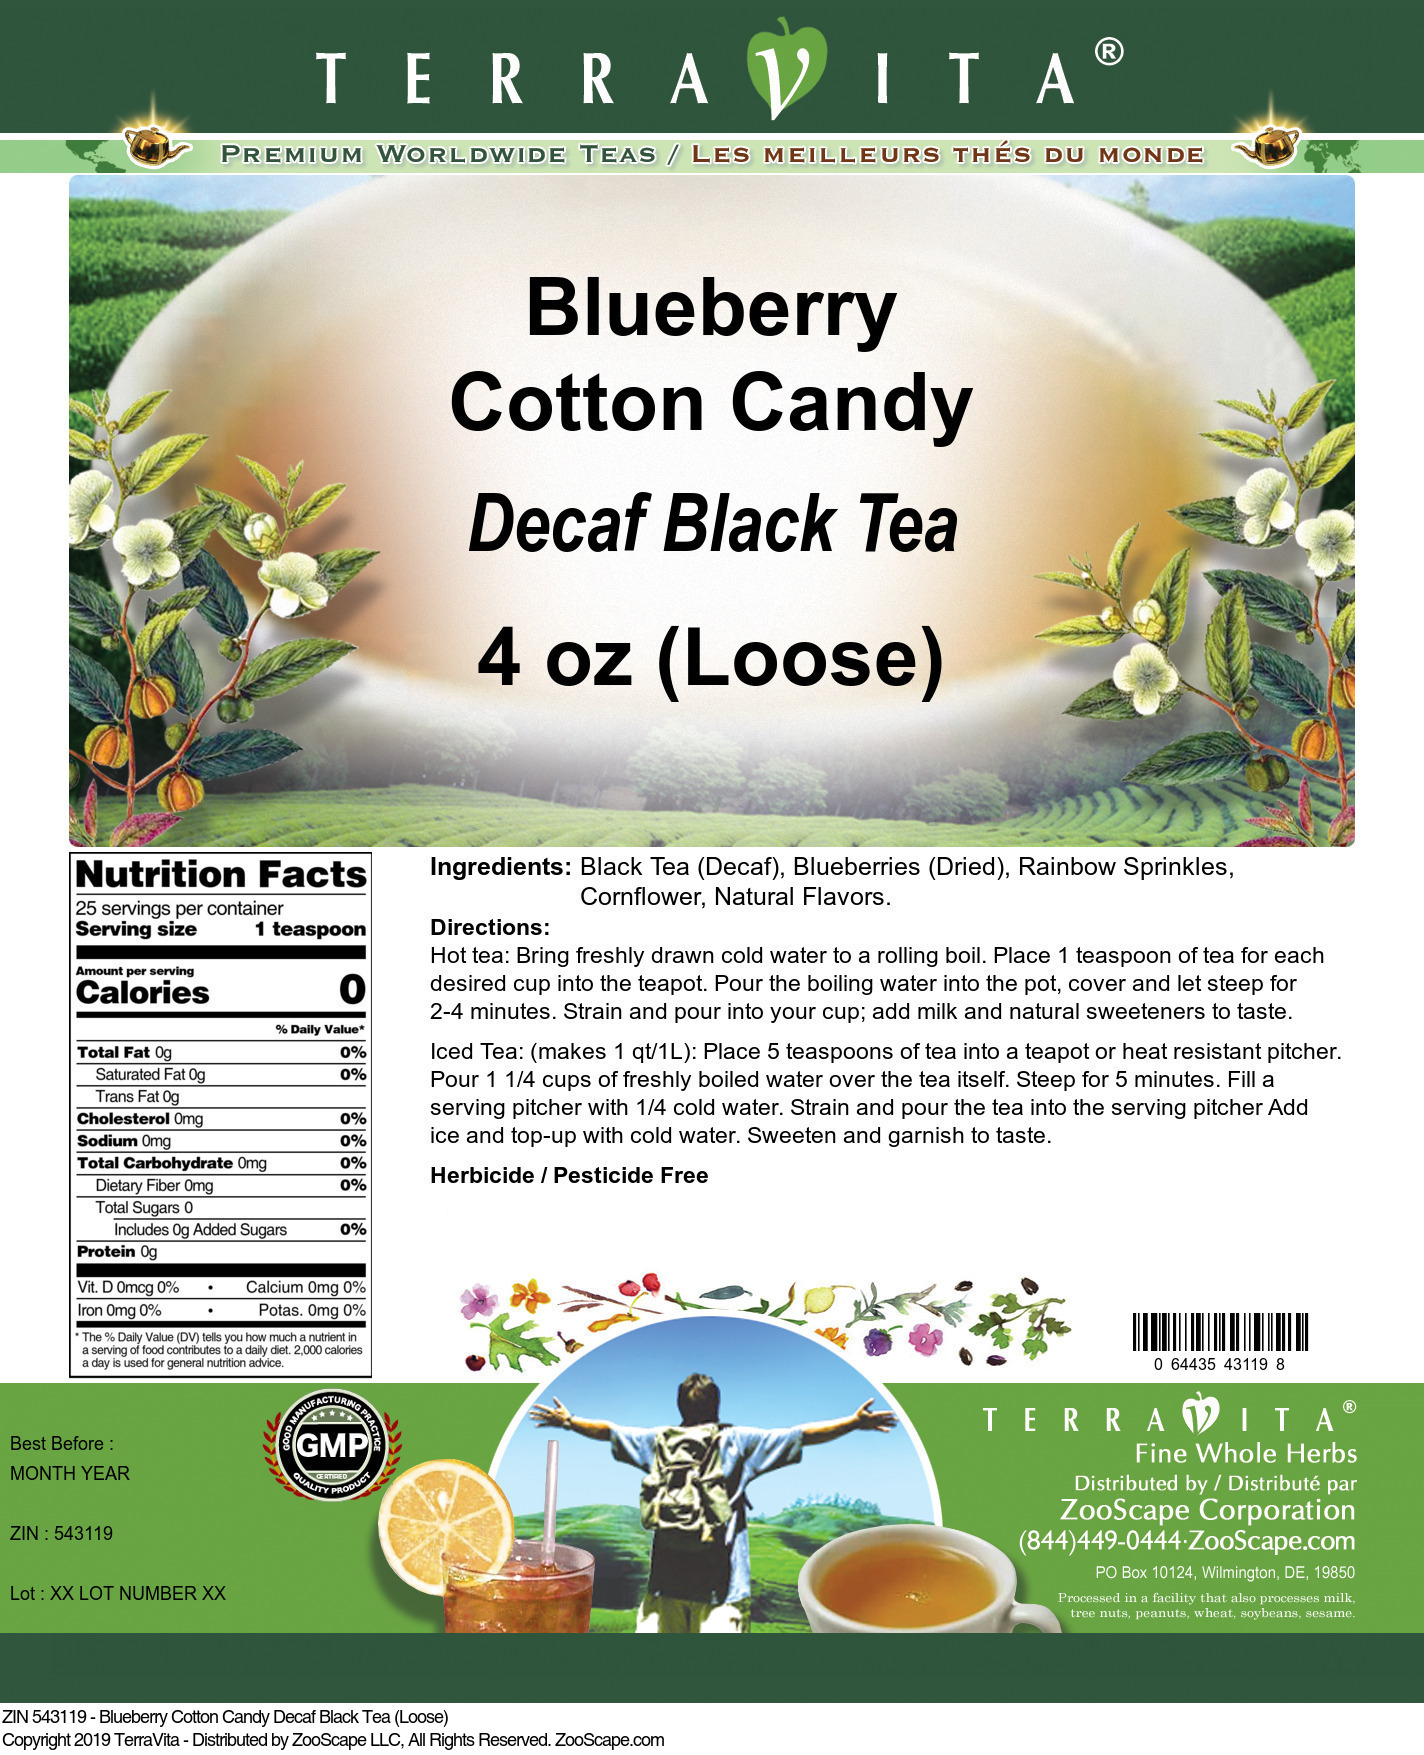 Blueberry Cotton Candy Decaf Black Tea (Loose)